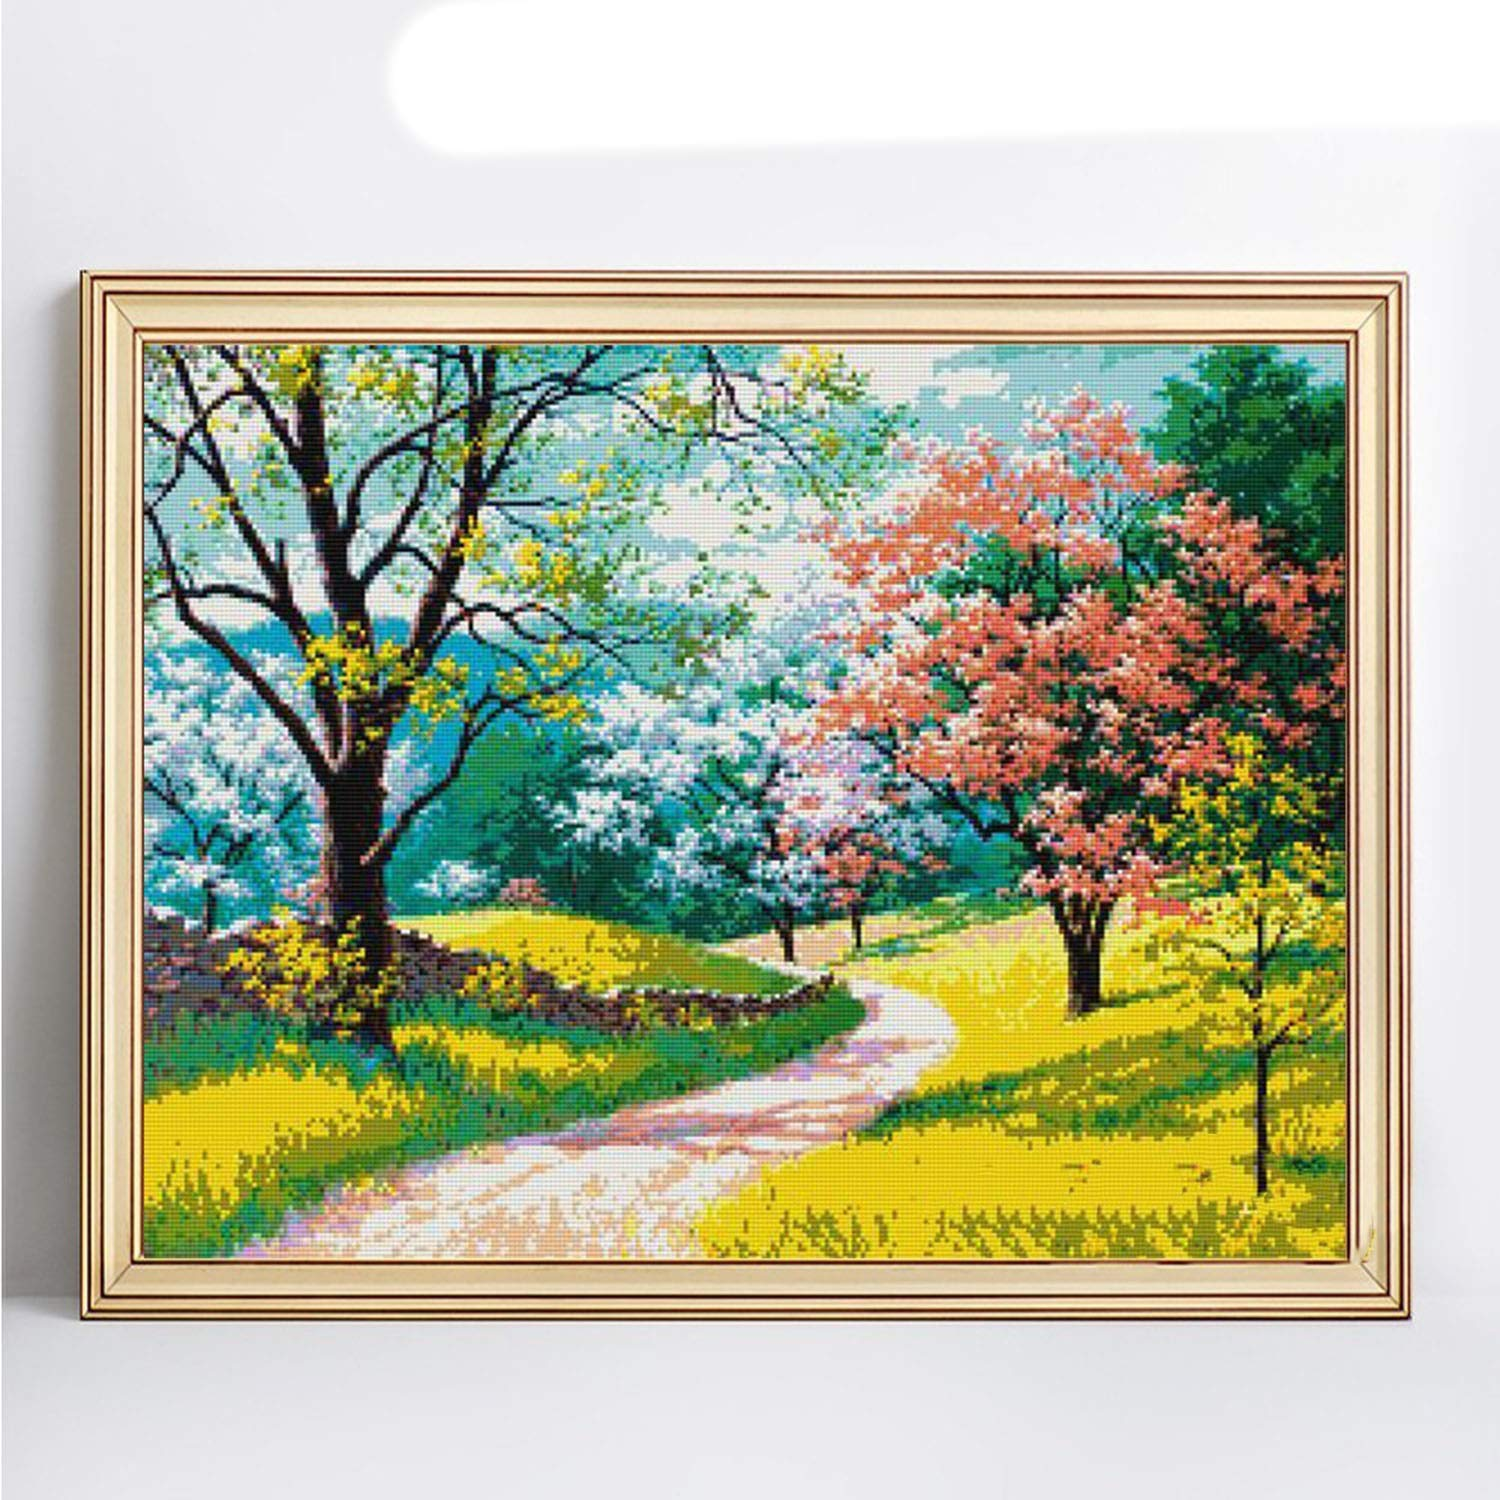 Diamond Embroidery Full Display Spring Full Square DIY Cross Stitch Diamond Painting Landscape Mosaic Home Decor Gift,F20,Squaredrill 80x100cm by ONLY-FOR-ME-1 (Image #2)